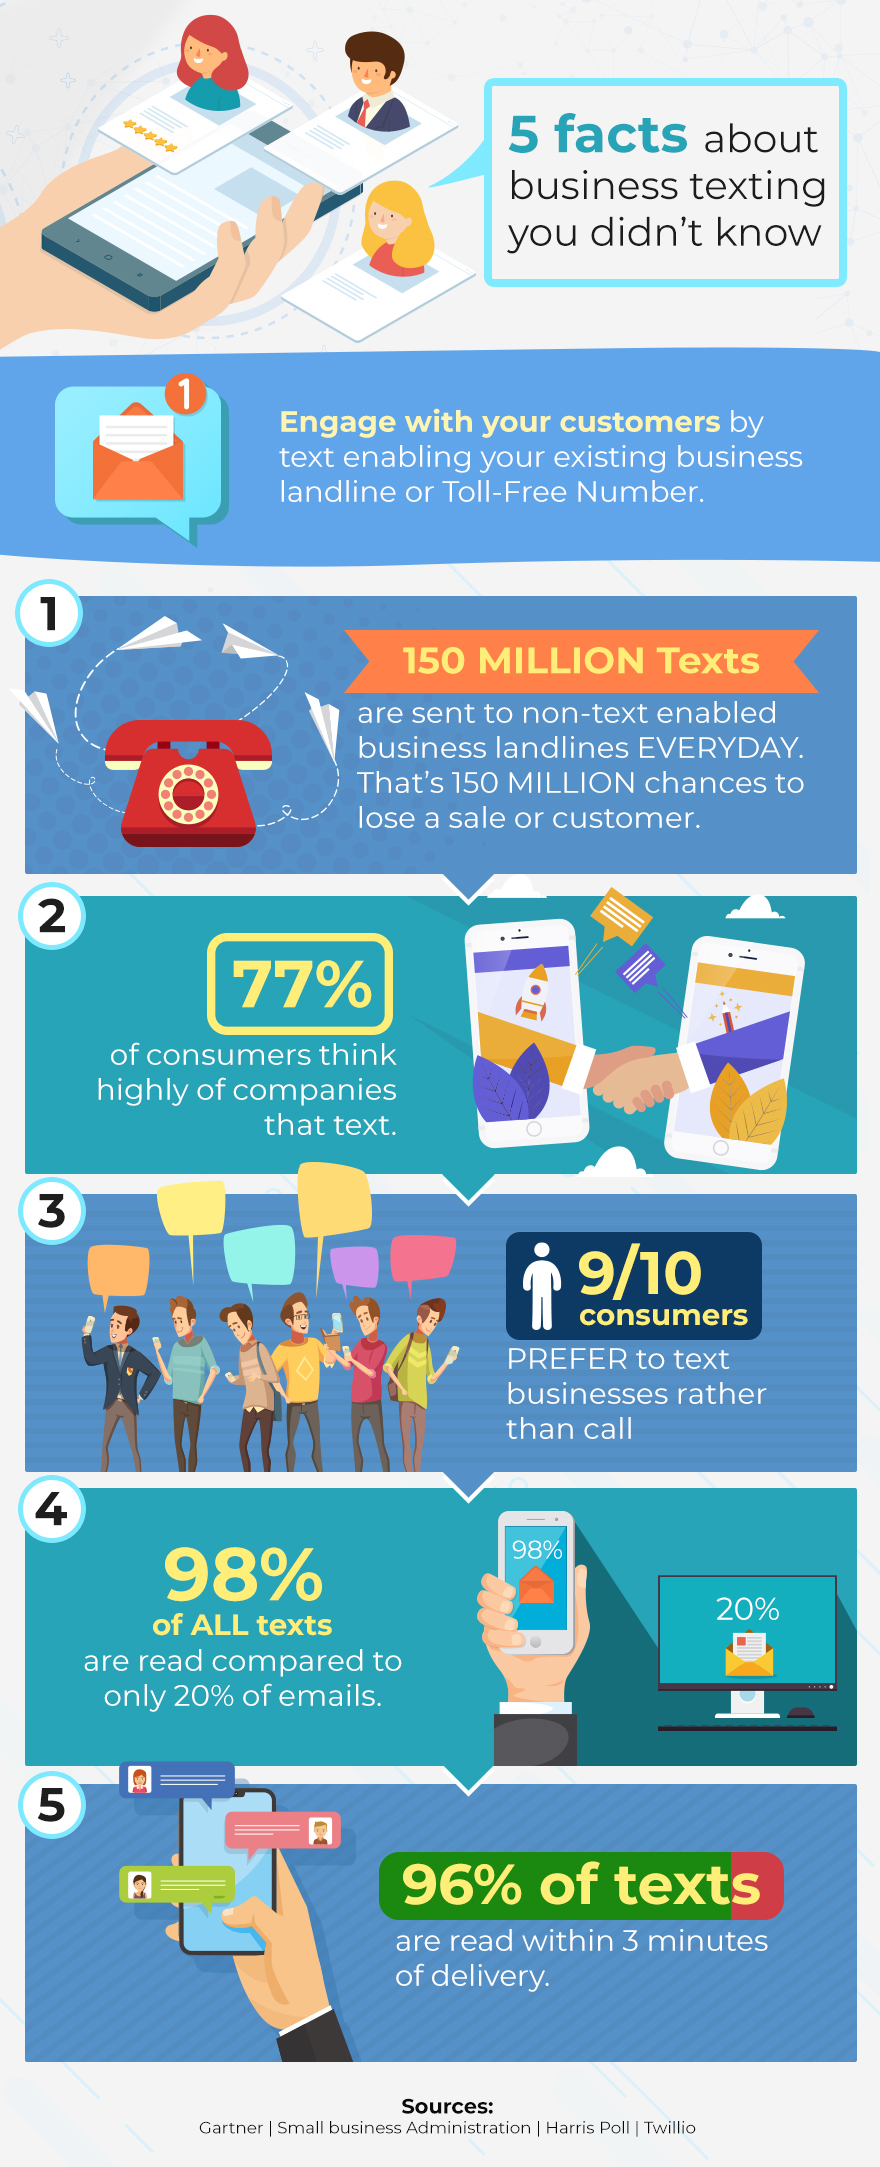 infographic-5-facts-about-business-texting-you-didnt-know-about.jpg